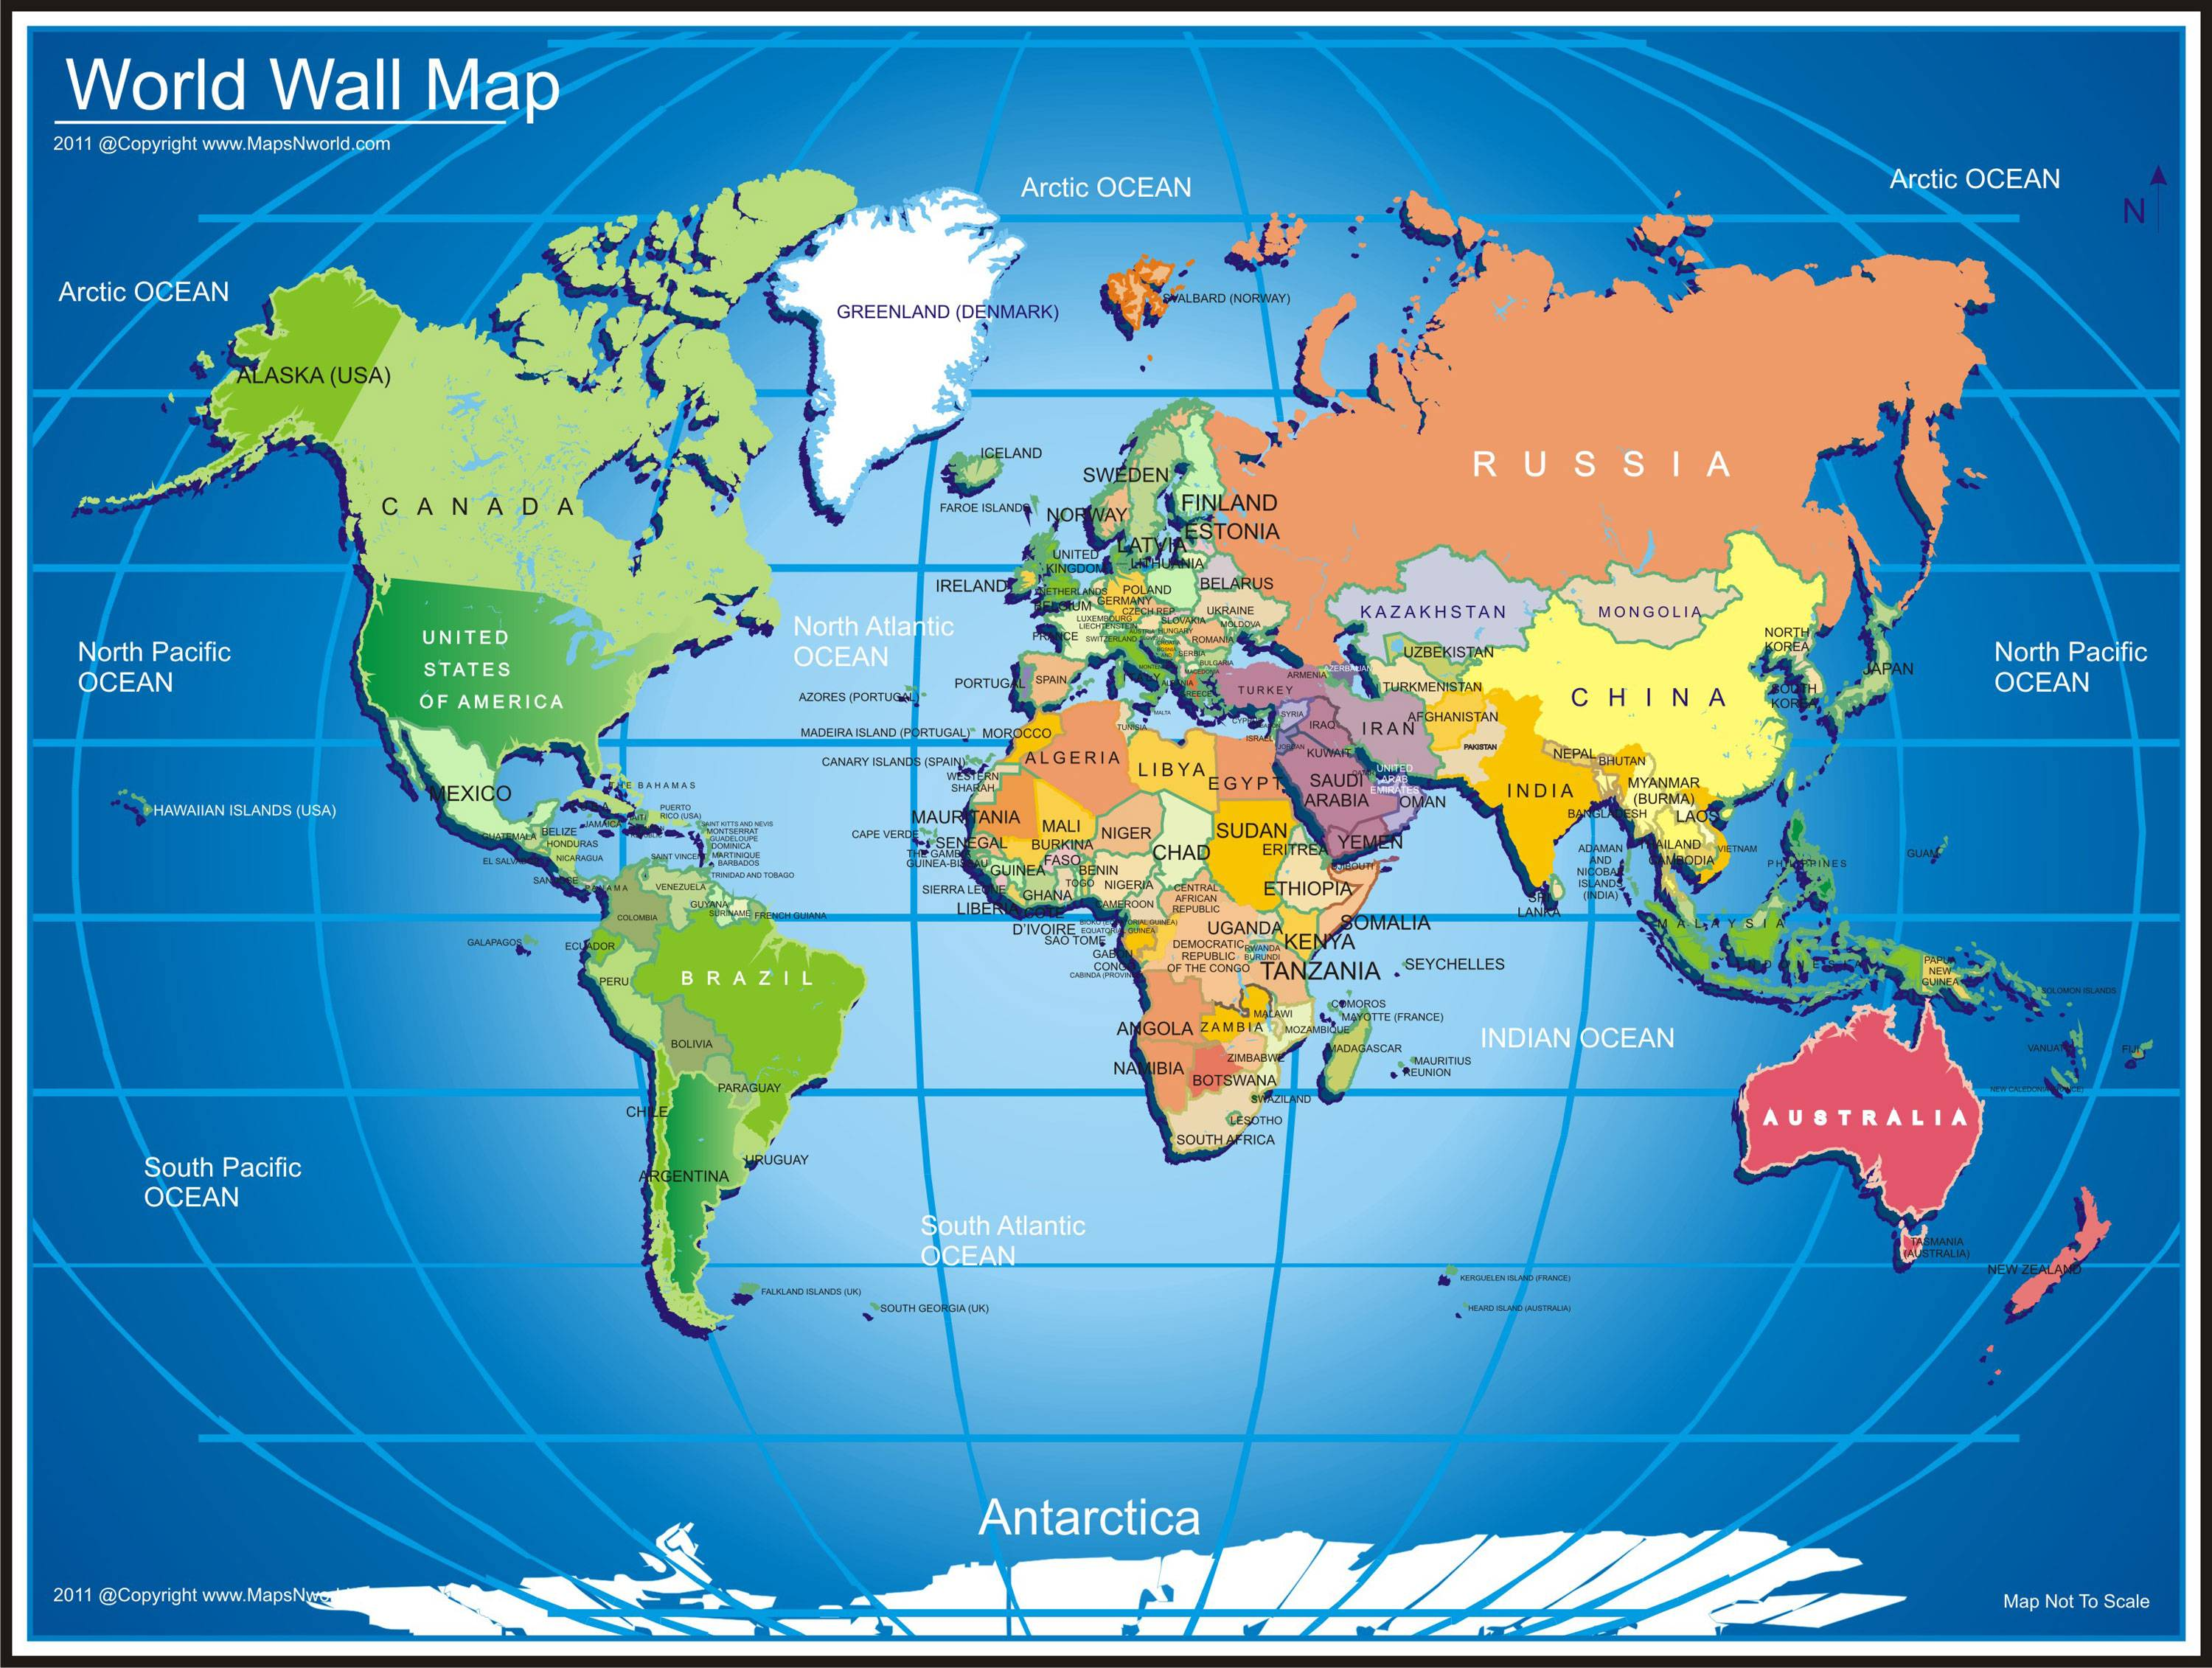 World map wallpaper hd pixelstalk colorful world map wallpaper 3 gumiabroncs Gallery